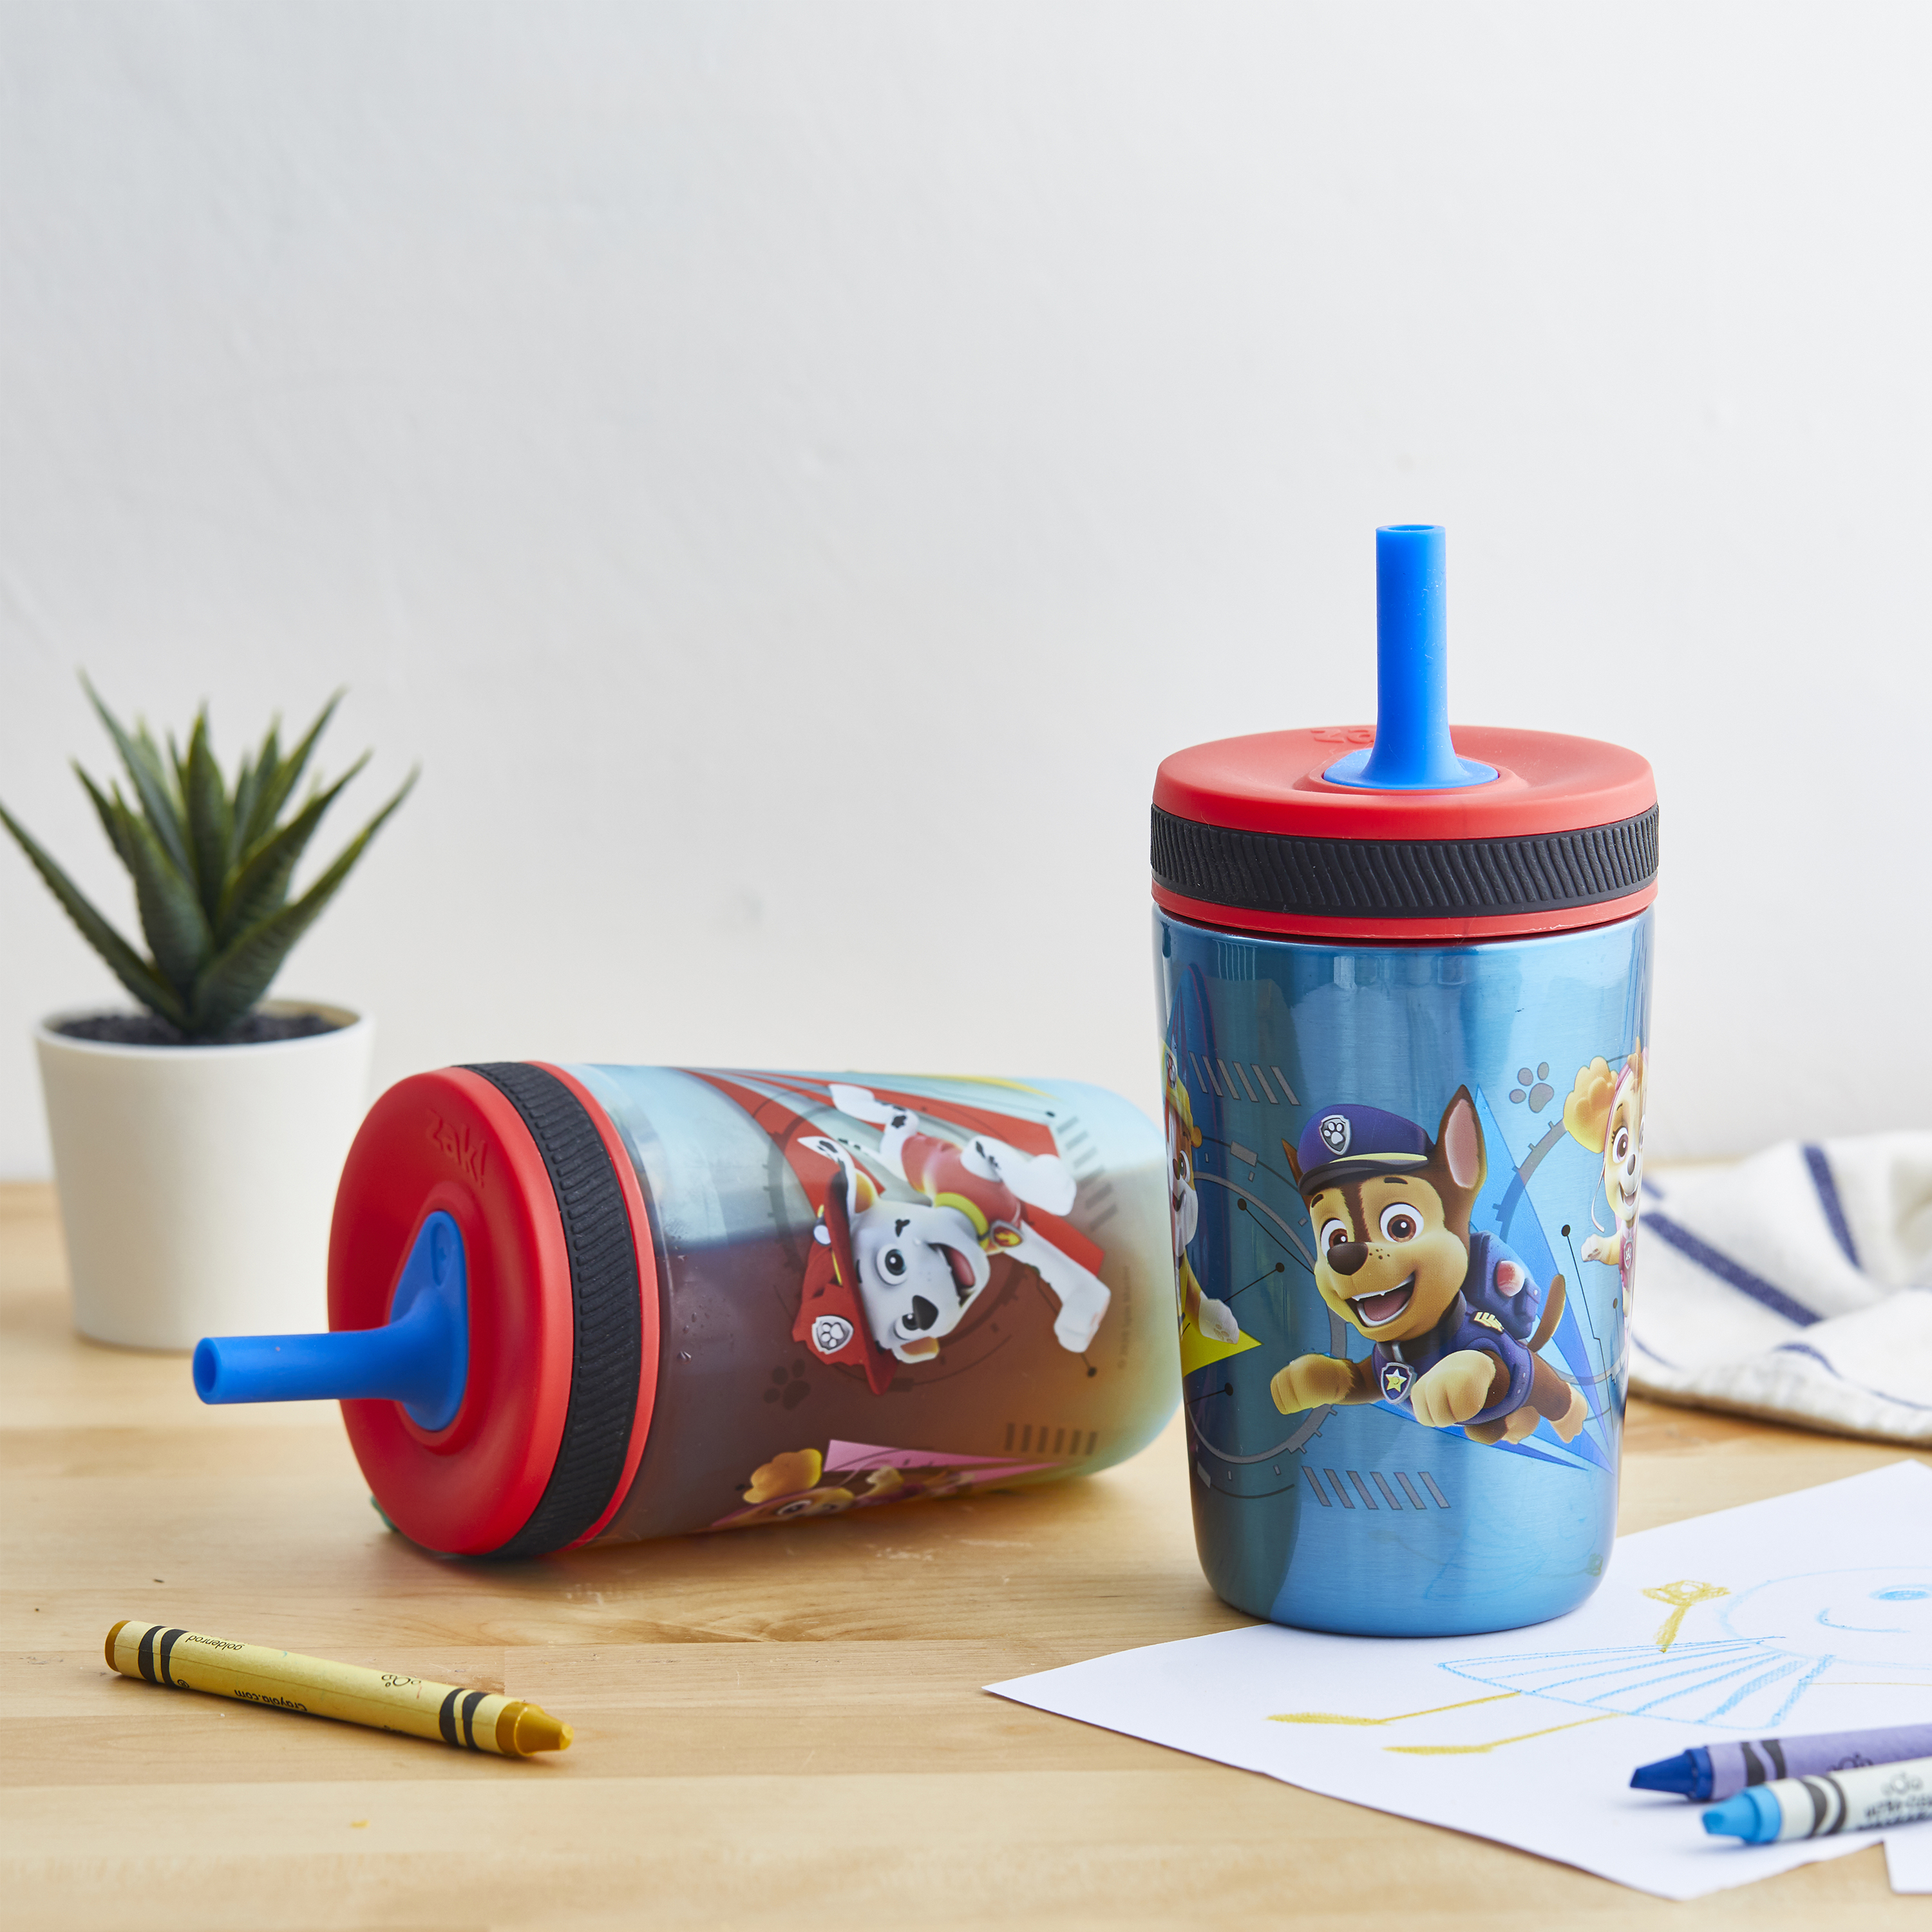 Paw Patrol 15  ounce Plastic Tumbler, Chase, Skye, Marshall and Friends, 3-piece set slideshow image 8